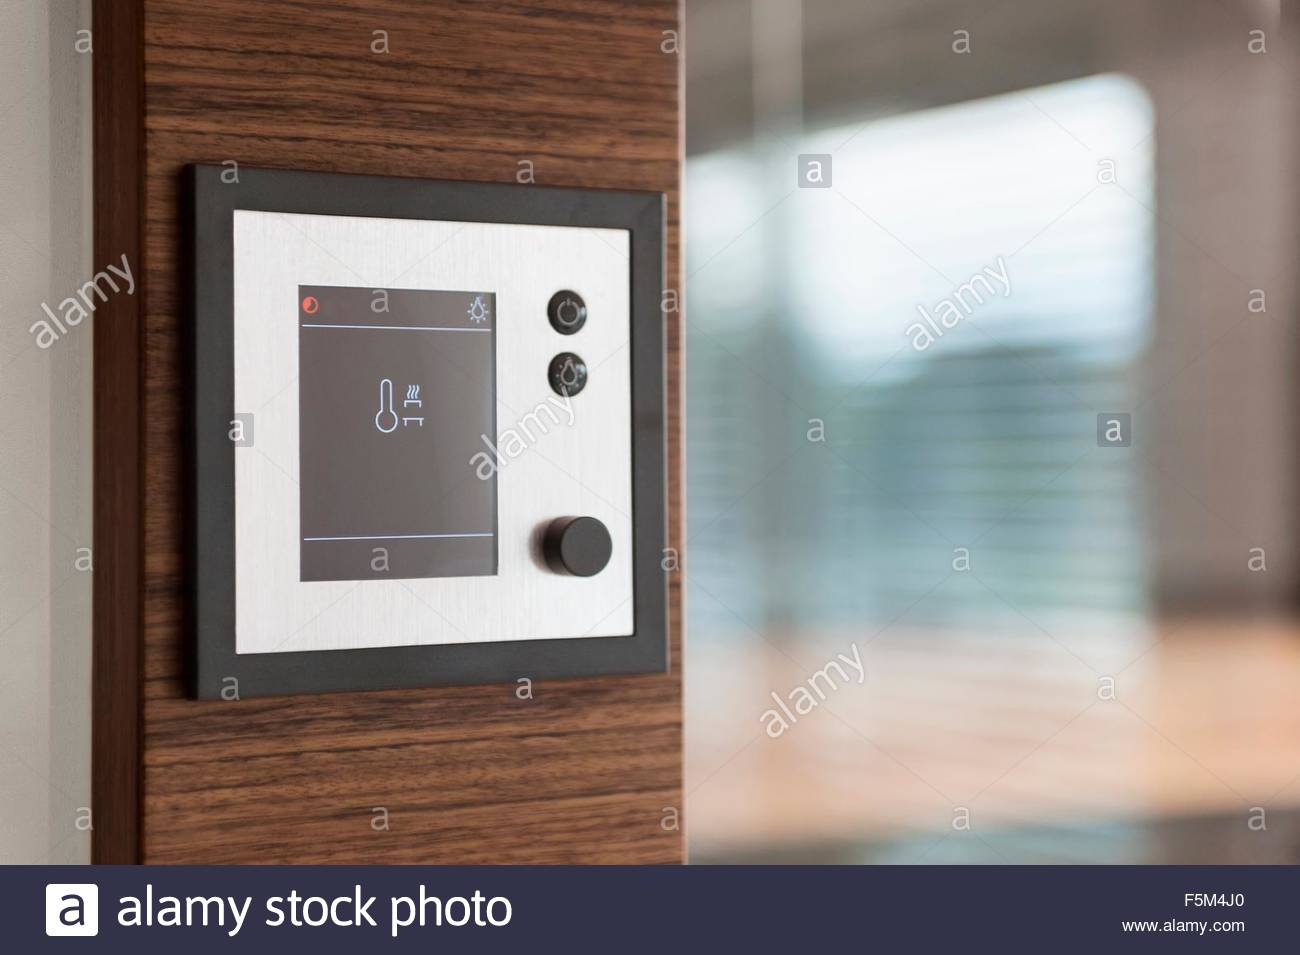 Temperature control panel of home automation system - Stock Image